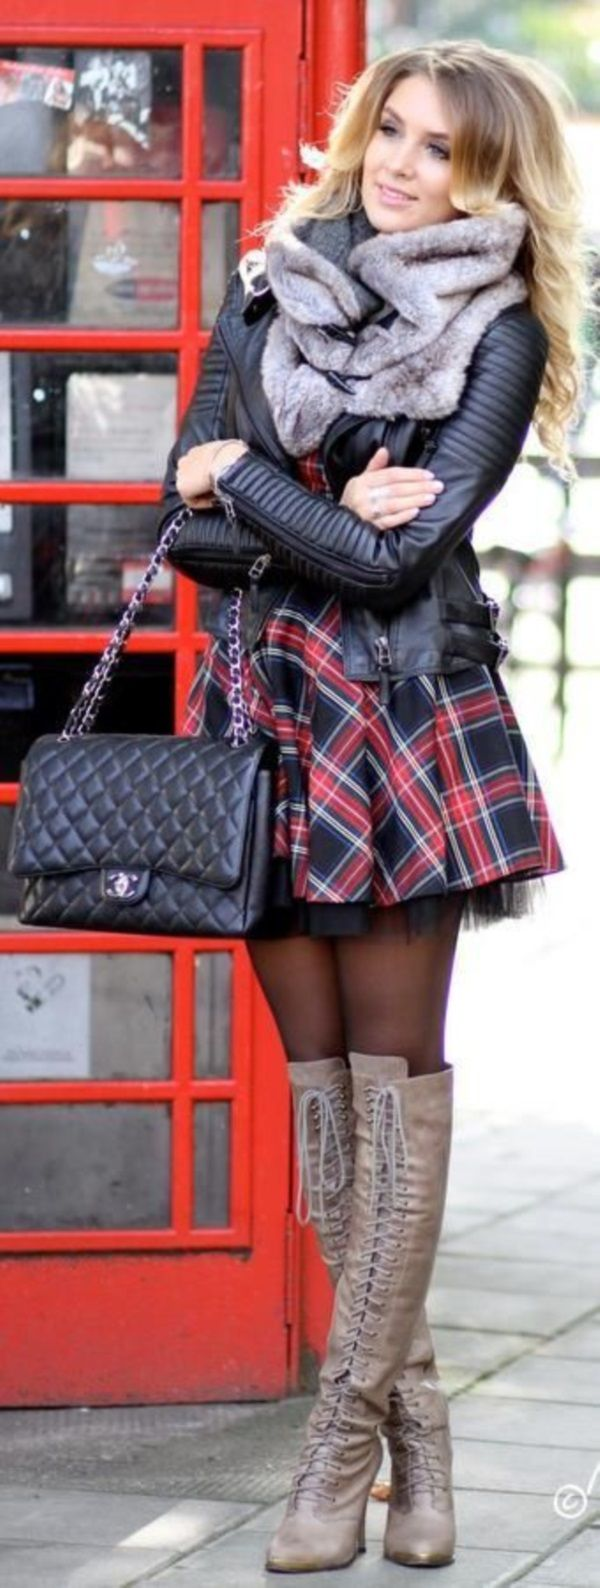 Love plaid. I must have more plaid this winter! Her coat looks good with plaid too.